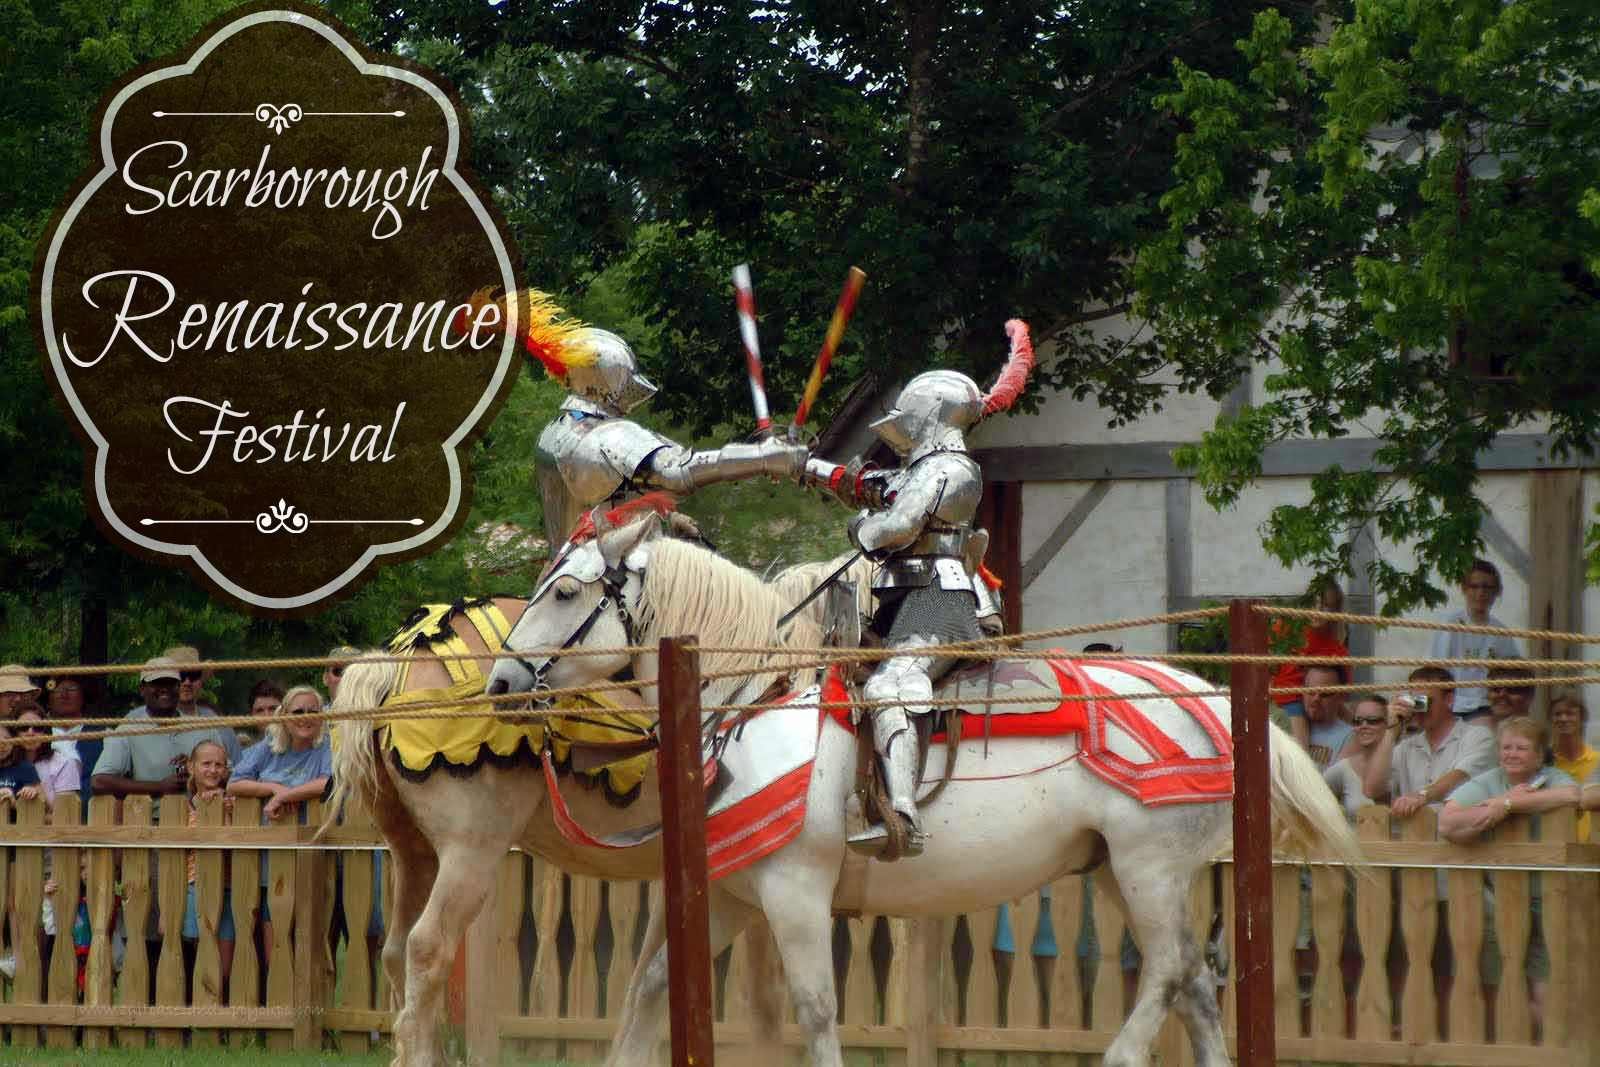 Are You Going to Scarborough Faire? : A Family Guide to a Texas Sized Renaissance Festival